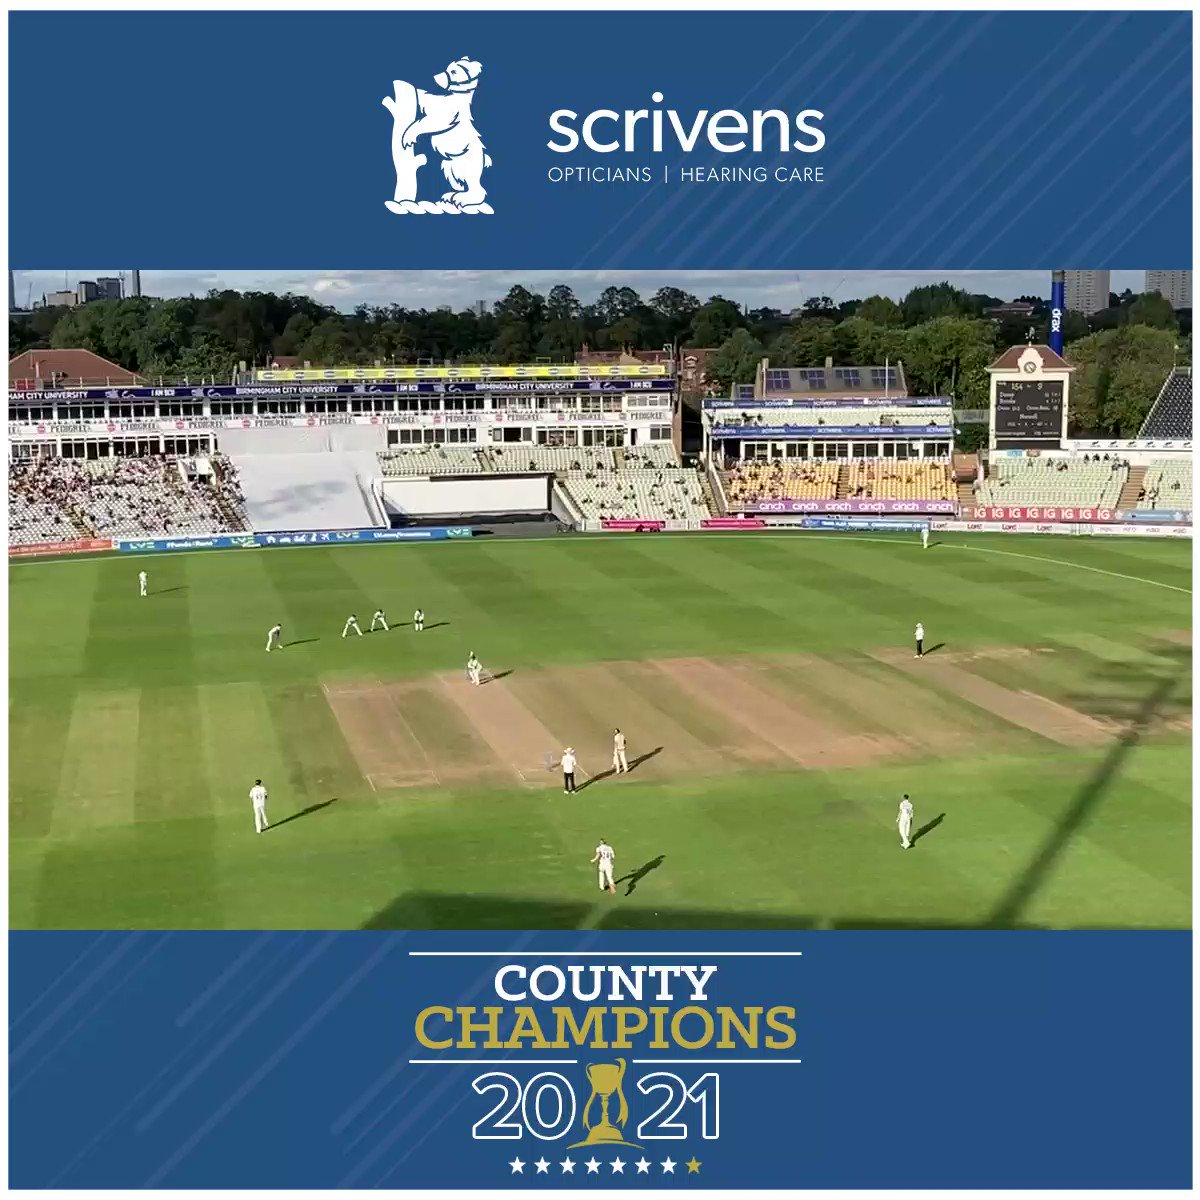 Brilliant!! Another wonderful moment at this special ground for a great club #YouBears